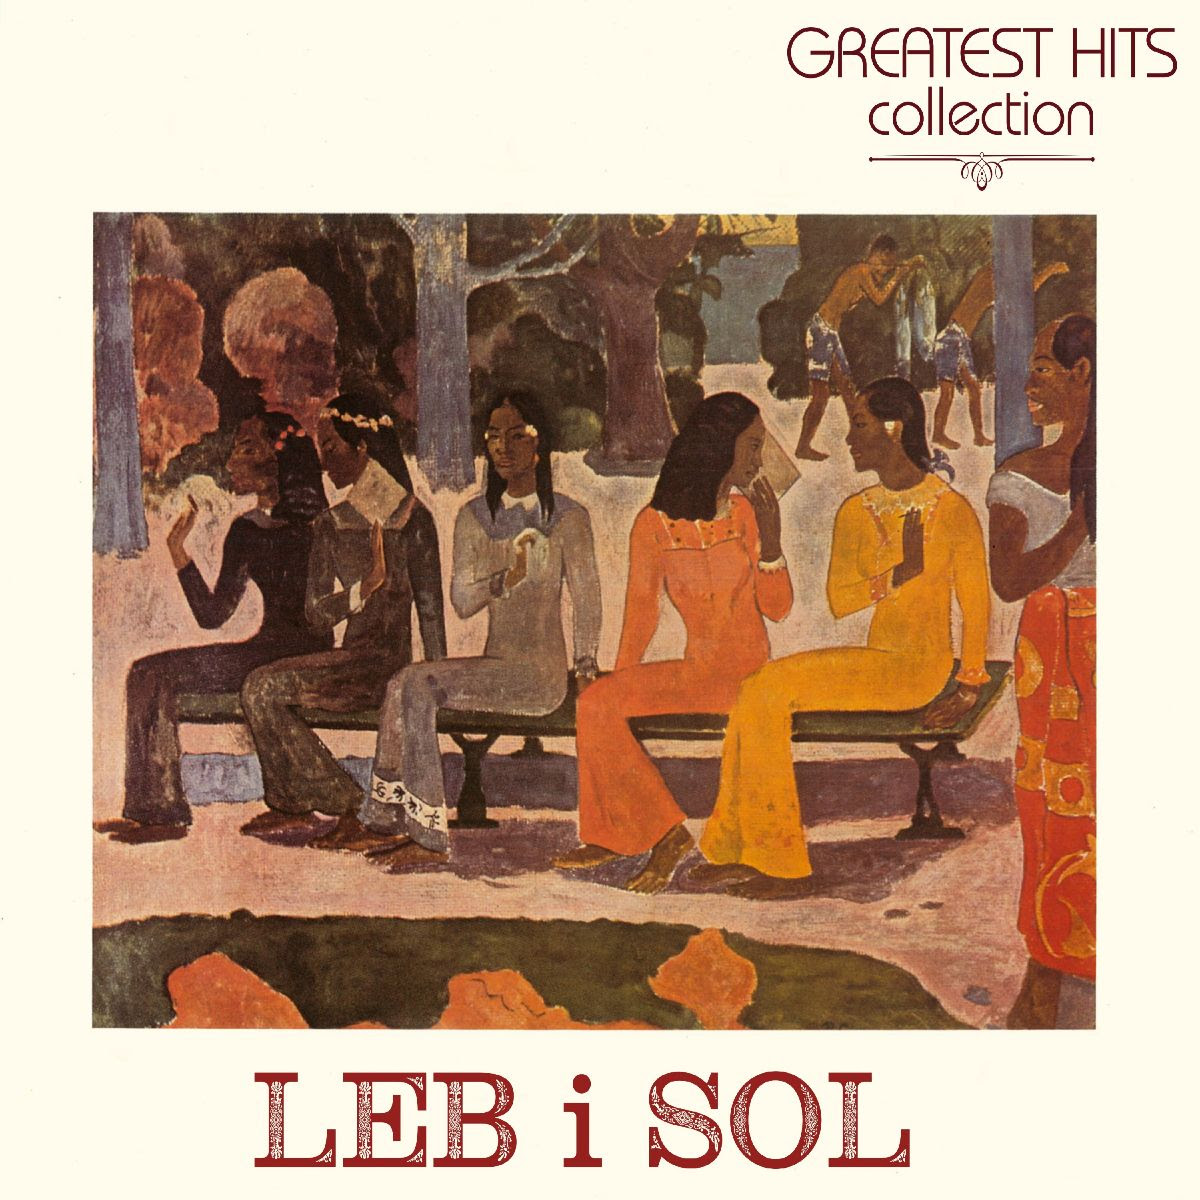 u-prodaji-je-leb-i-sol-greatest-hits-collection